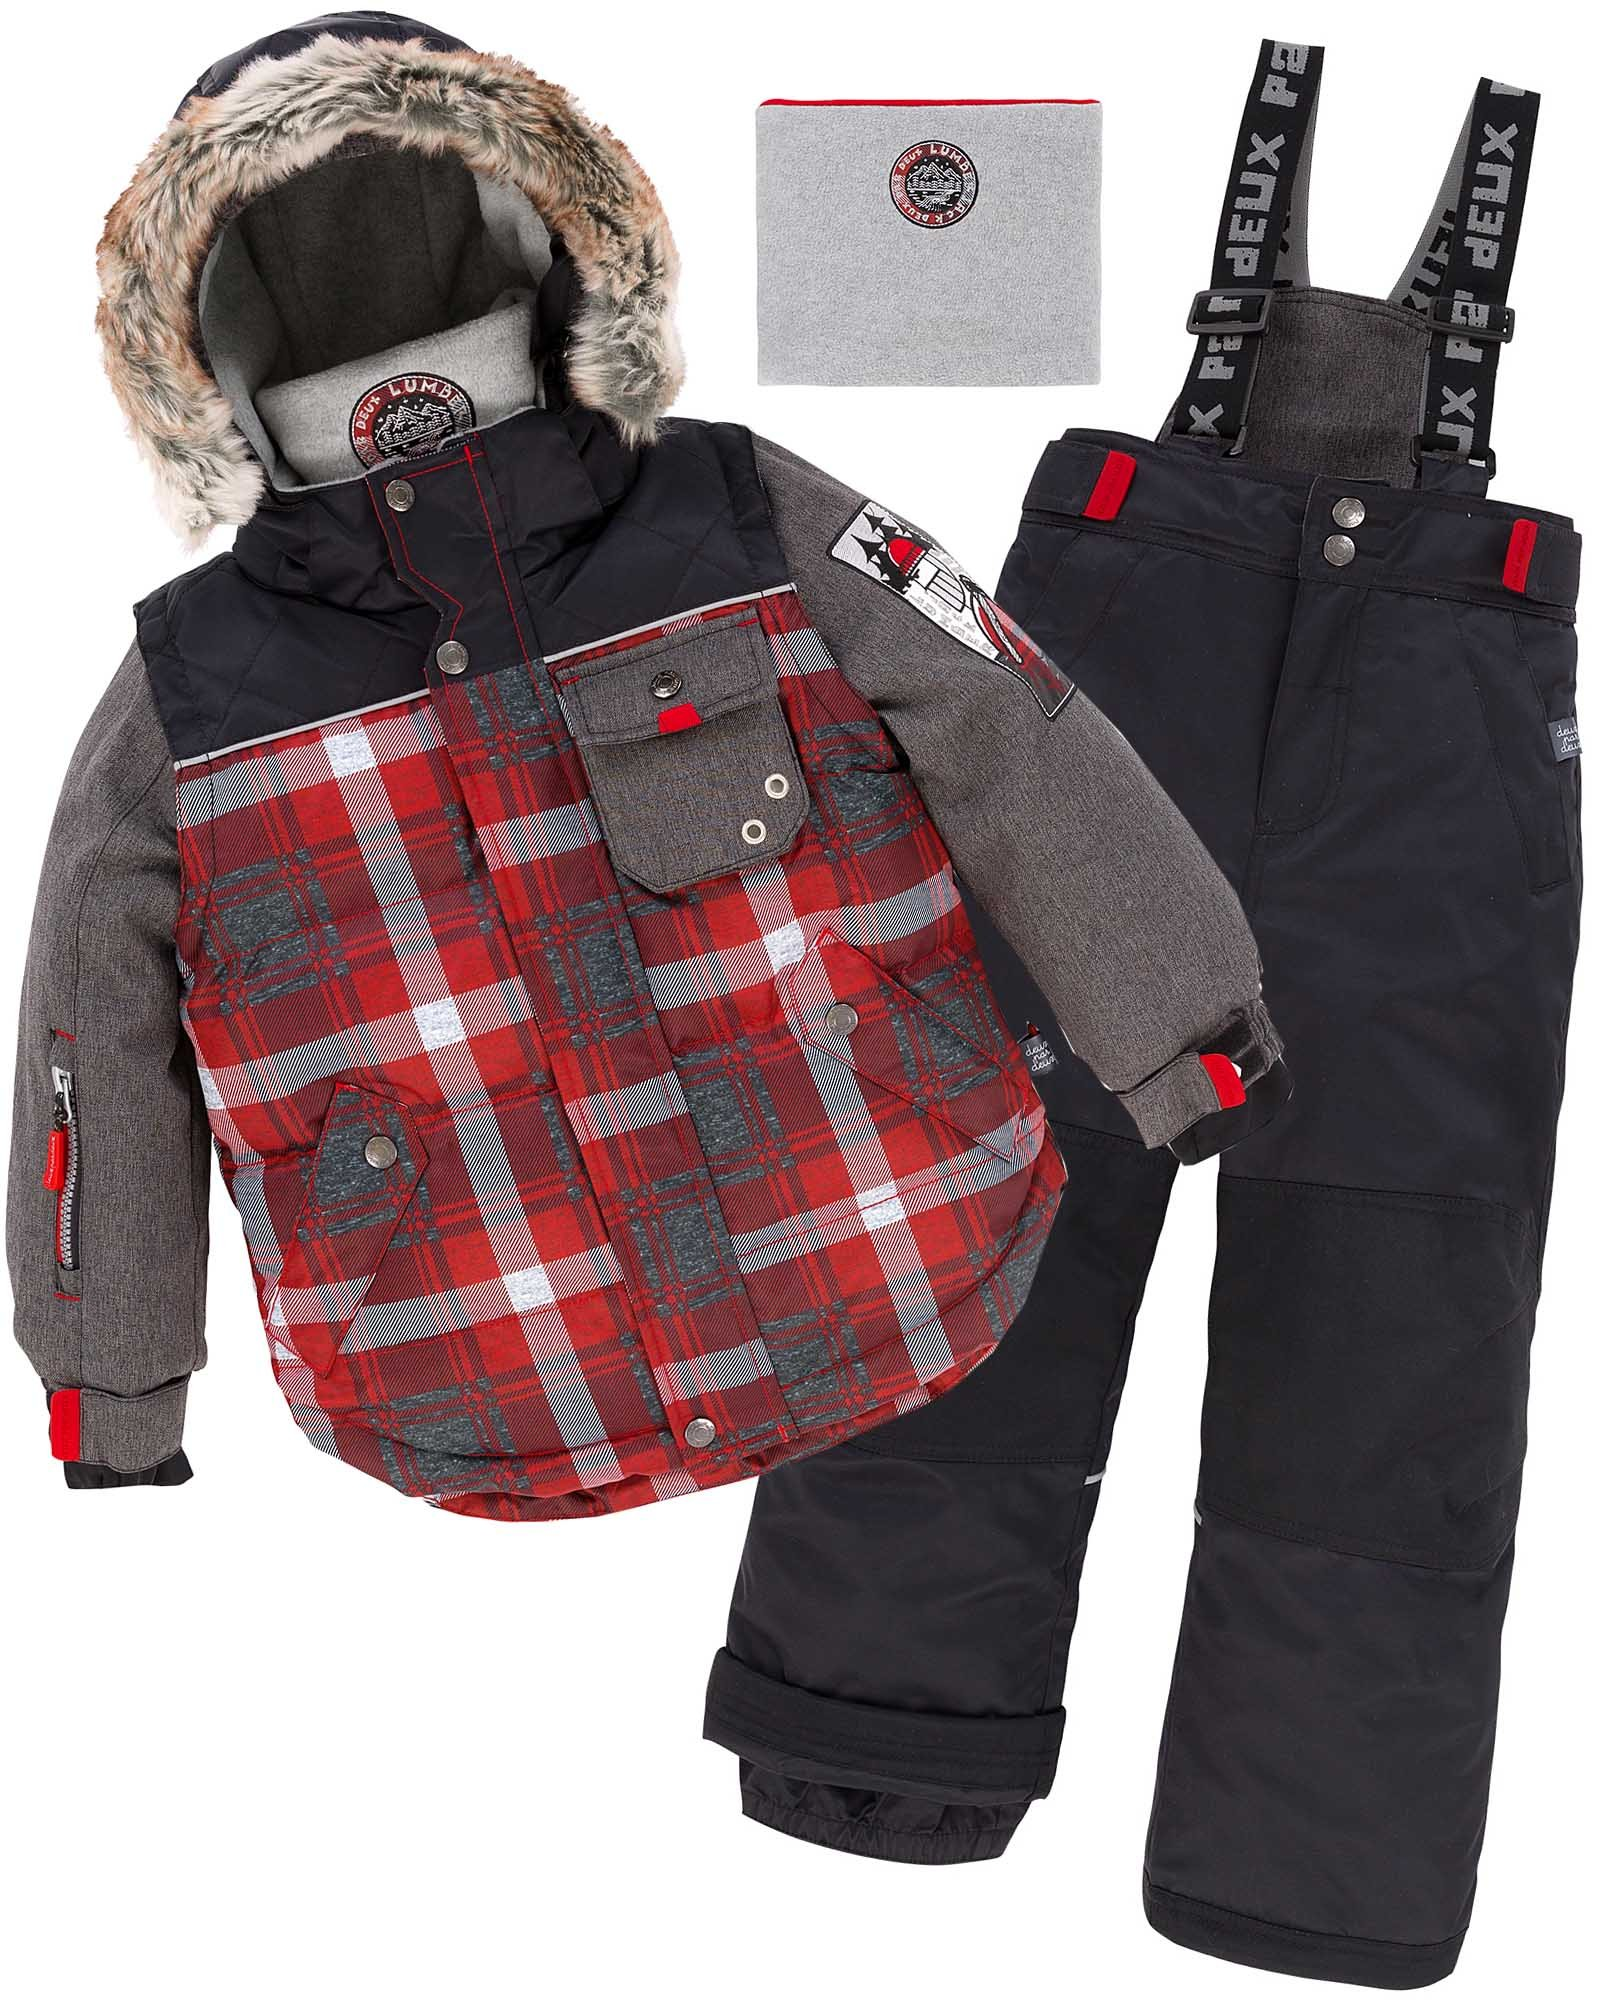 Deux par Deux Boys' 2-Piece Snowsuit Lumberjack Black, Sizes 5-14 - 8 by Deux par Deux